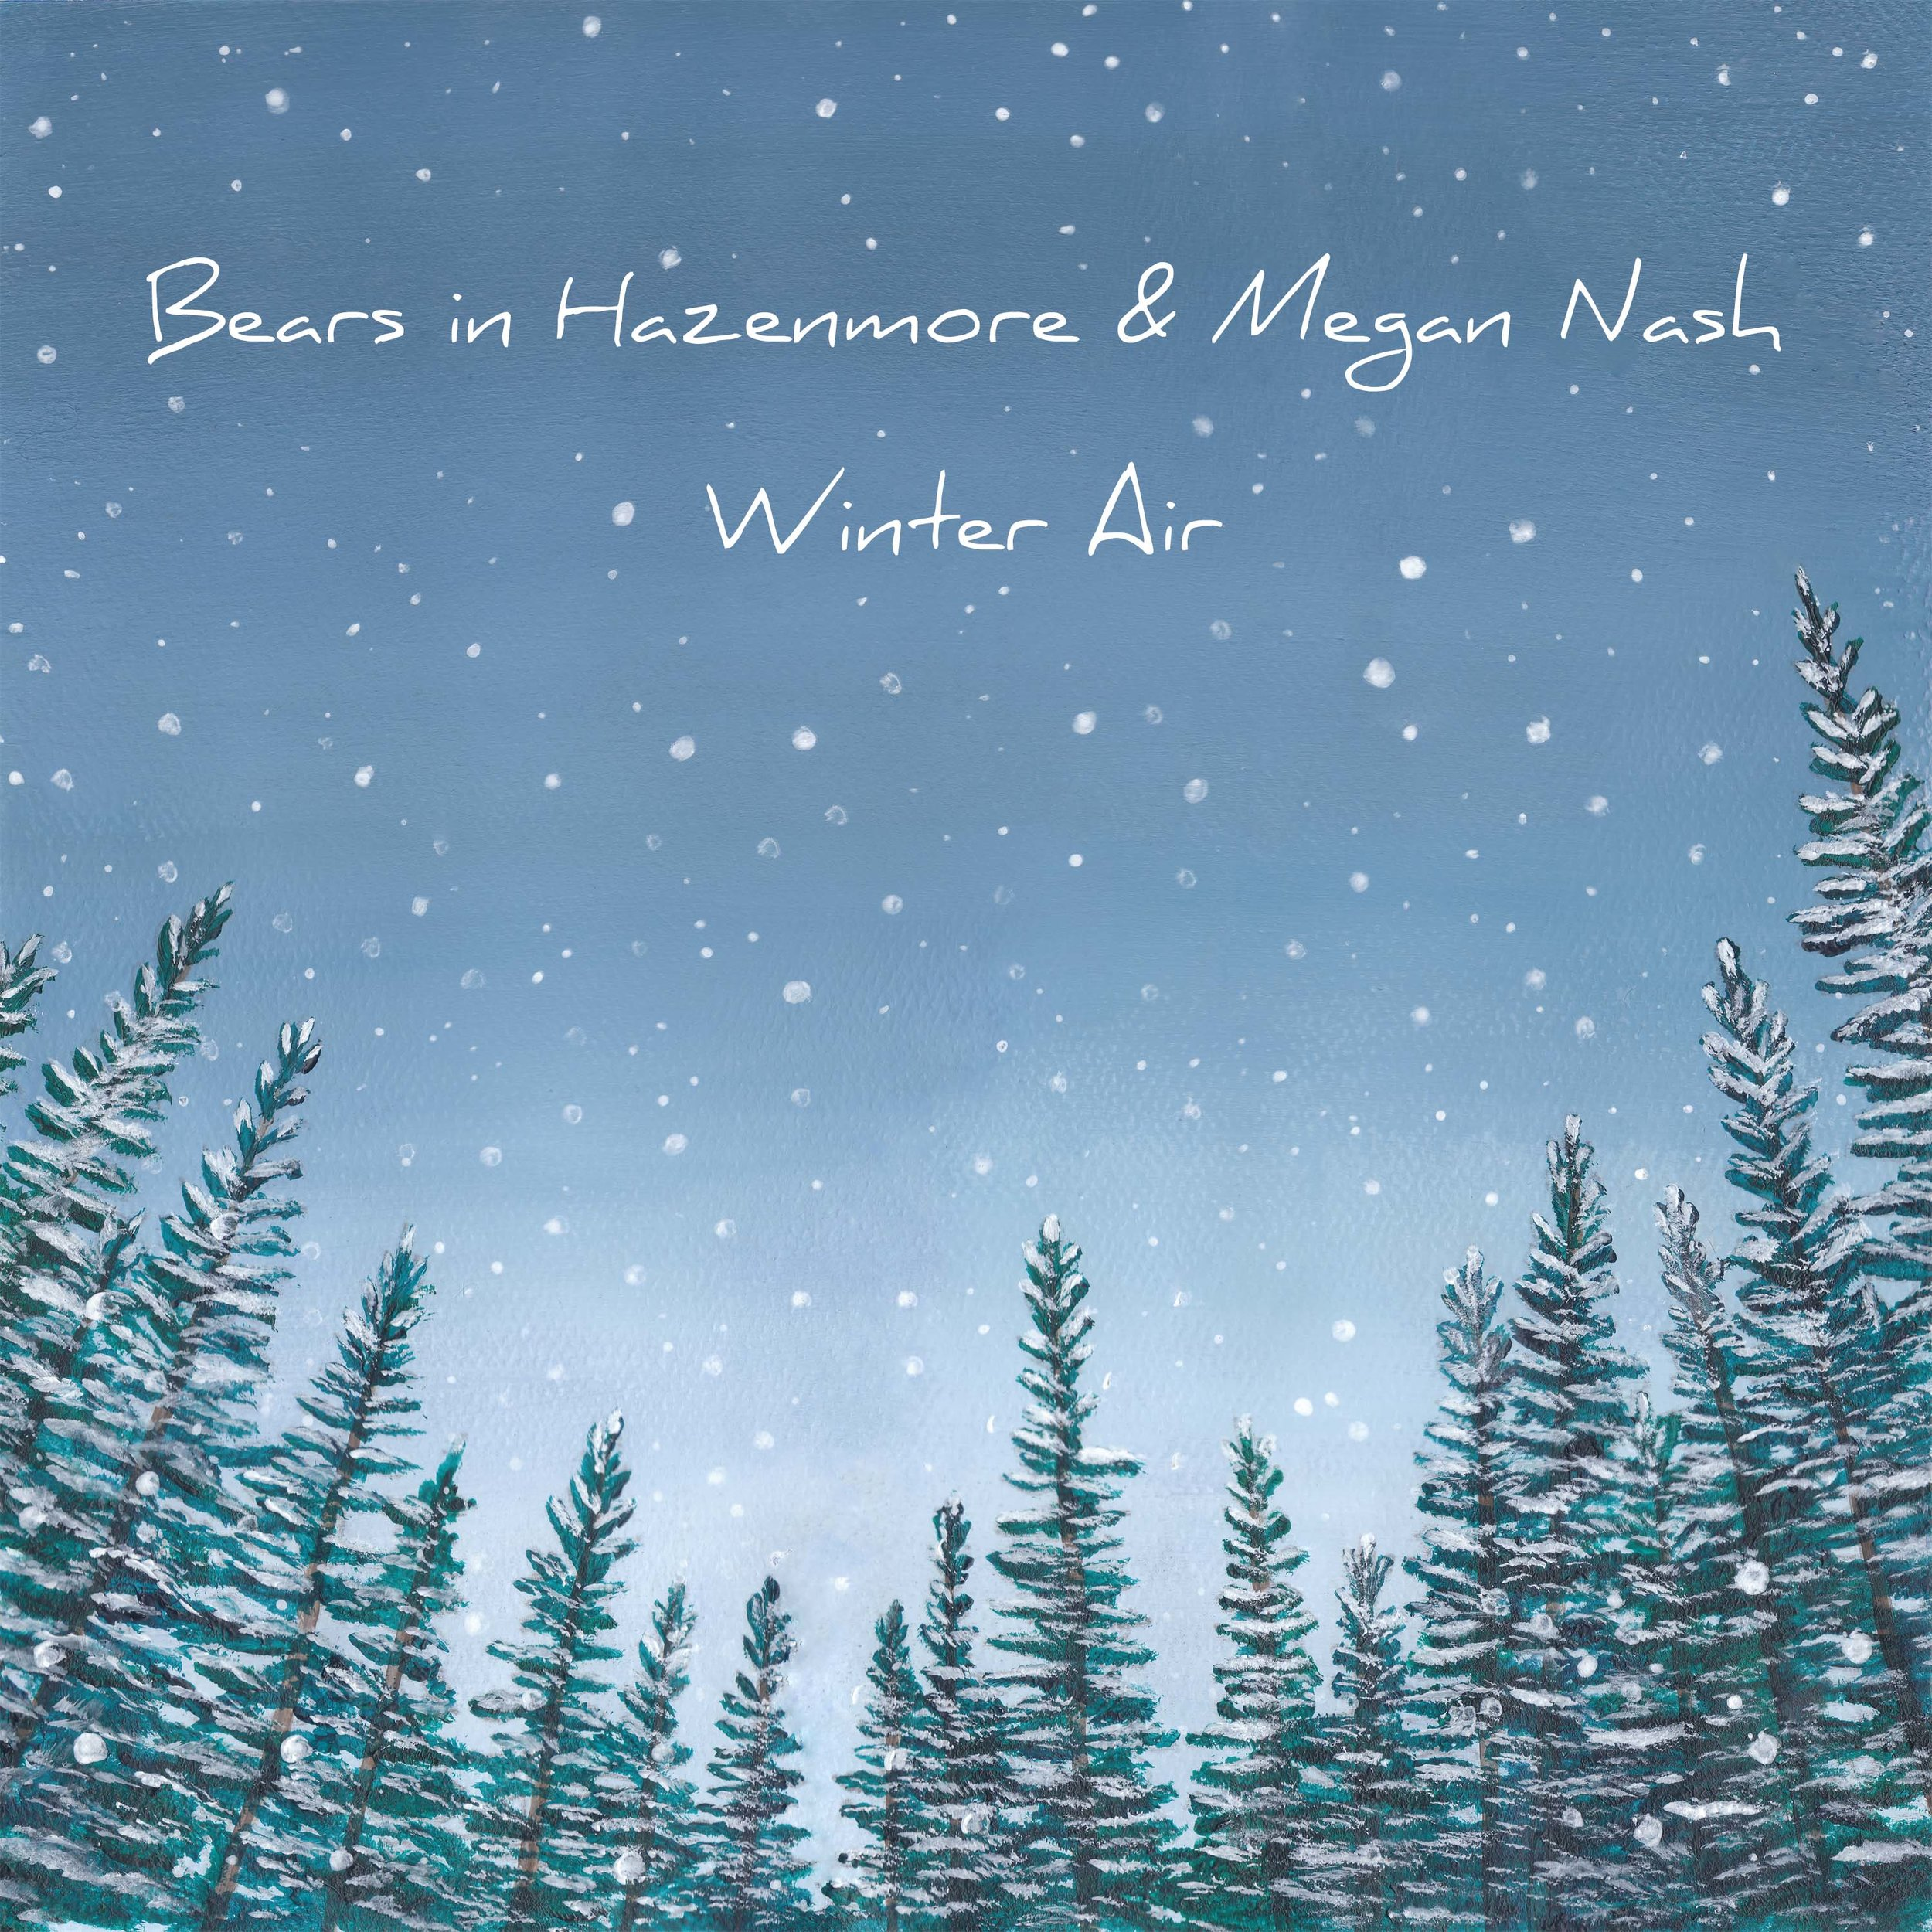 Winter Air Single Artwork (Kelsey Chabot).jpg